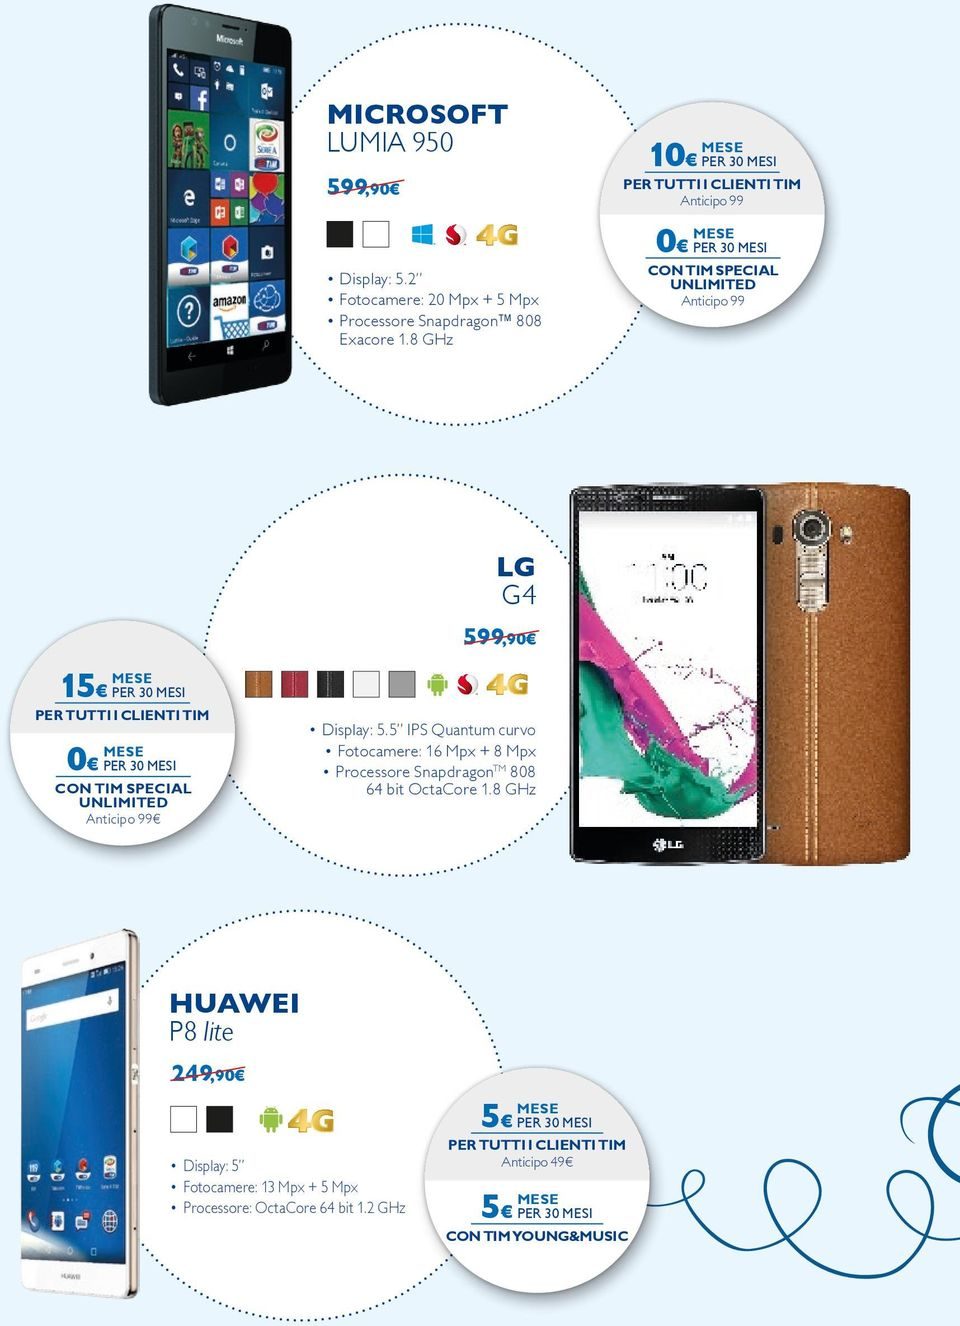 TIM SPECIAL UNLIMITED Display: 5.5 IPS Quantum curvo Fotocamere: 16 Mpx + 8 Mpx Processore Snapdragon TM 808 64 bit OctaCore 1.